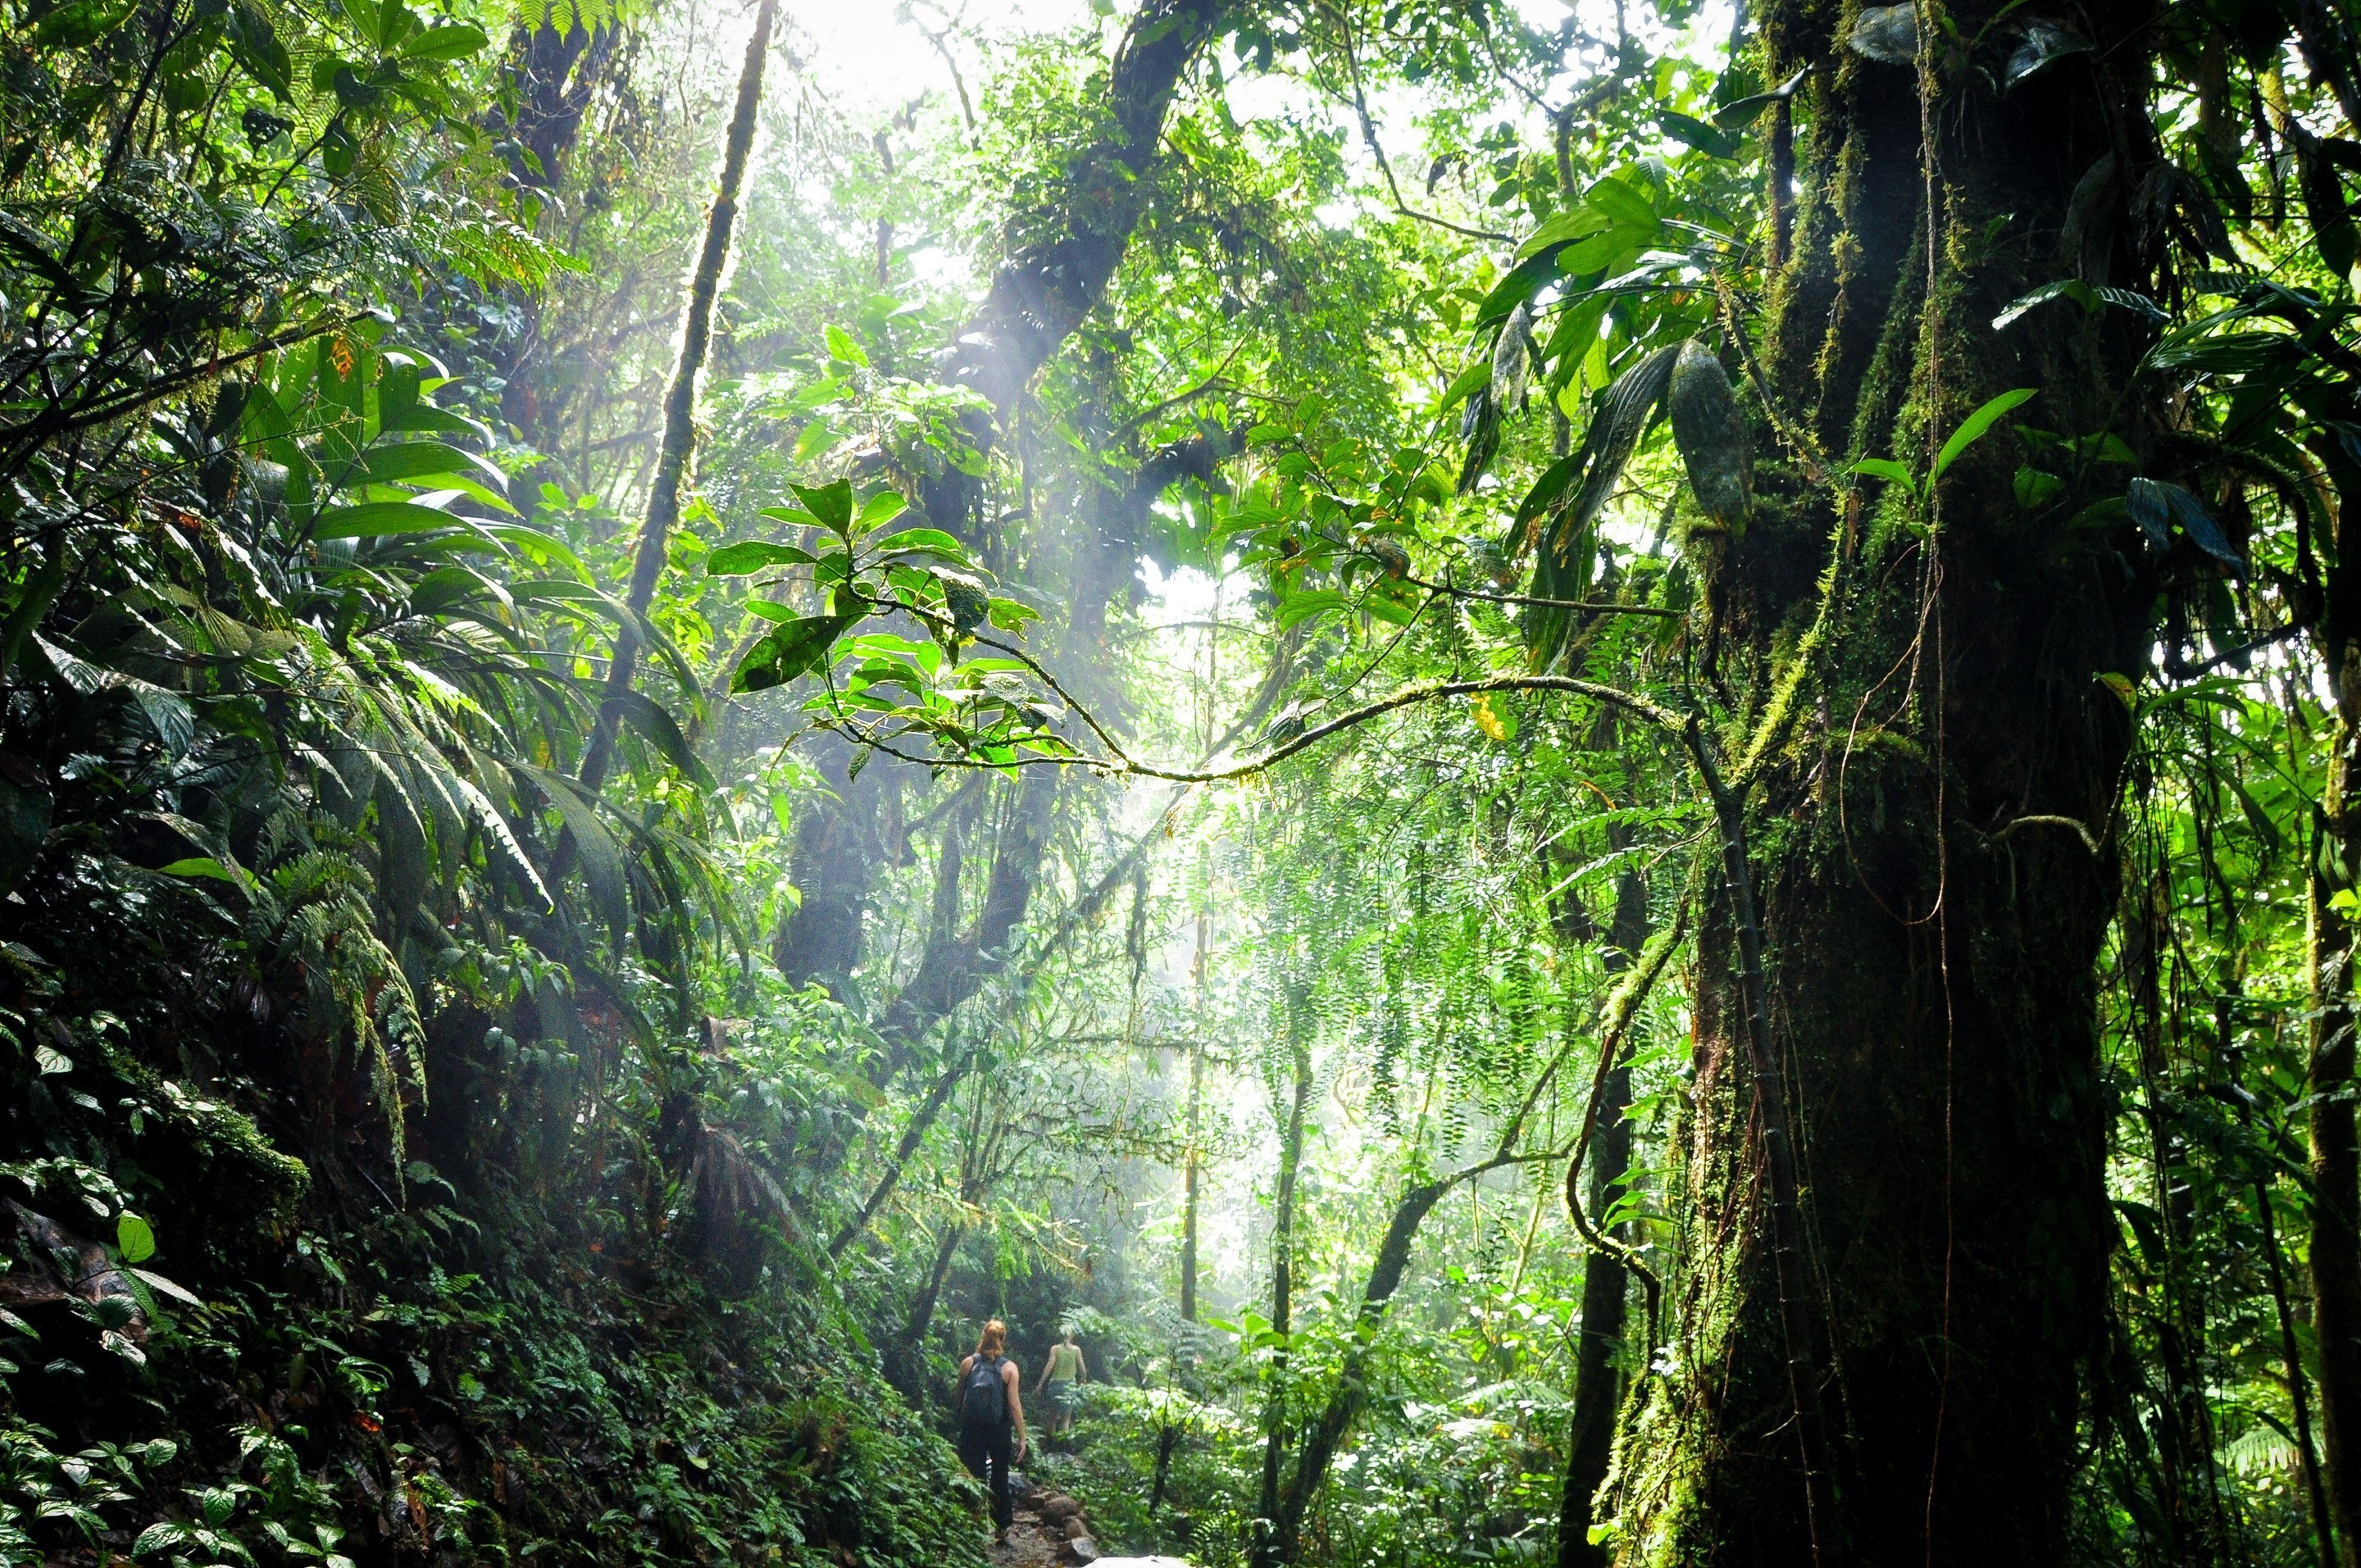 costa rica paysage - Image